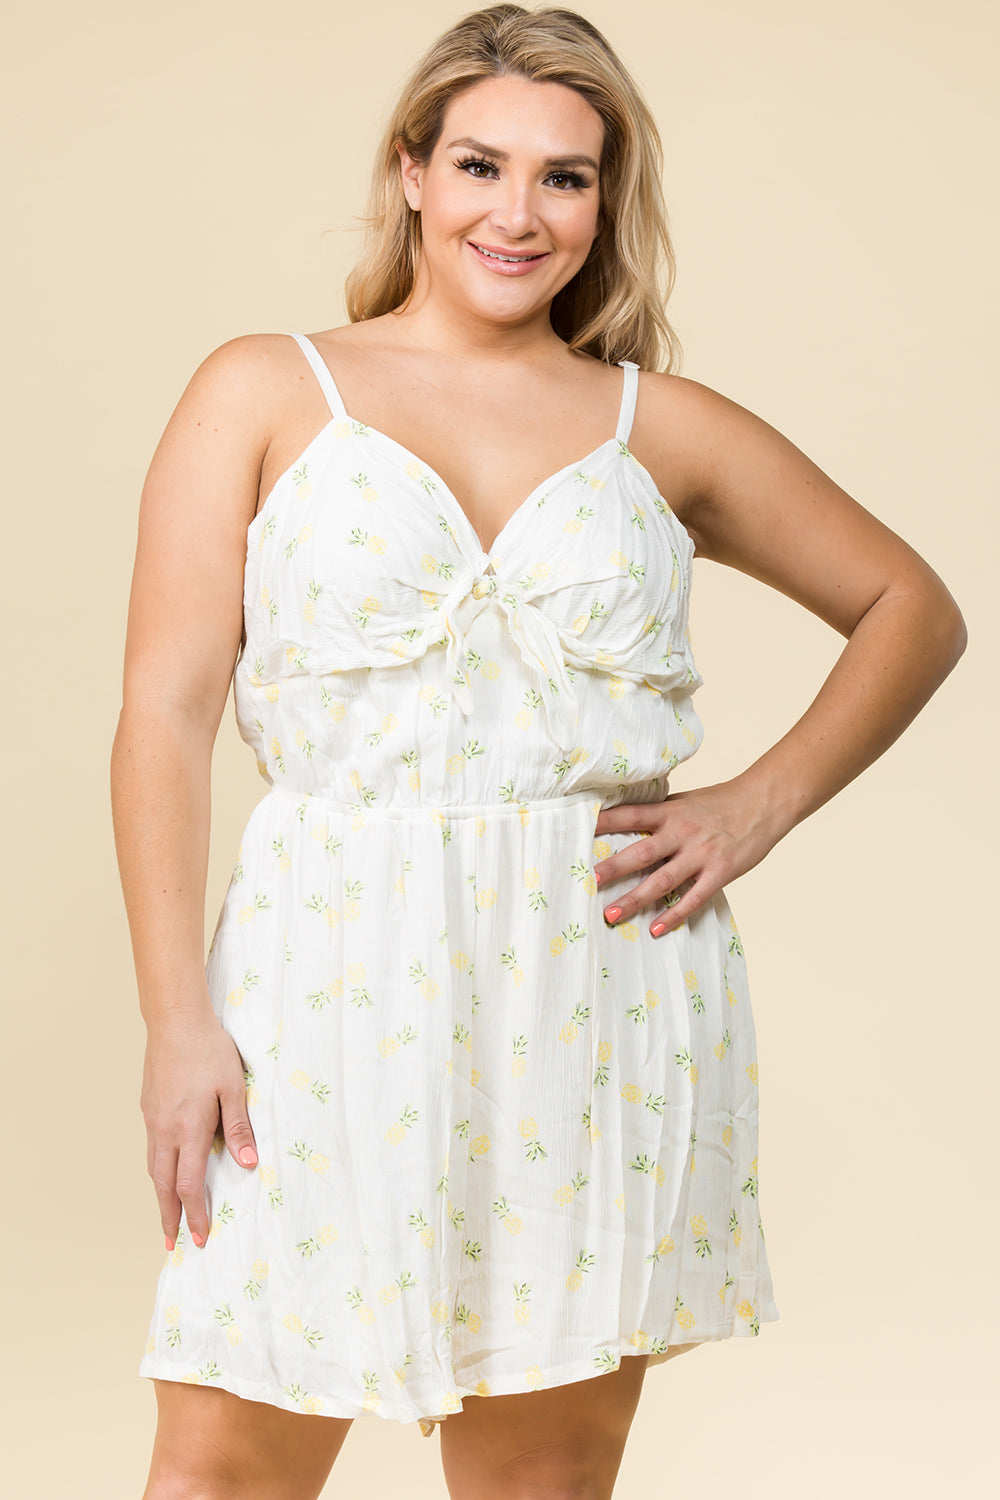 PLUS SIZE TIE FRONT ROMPER IN PINEAPPLE PRINT